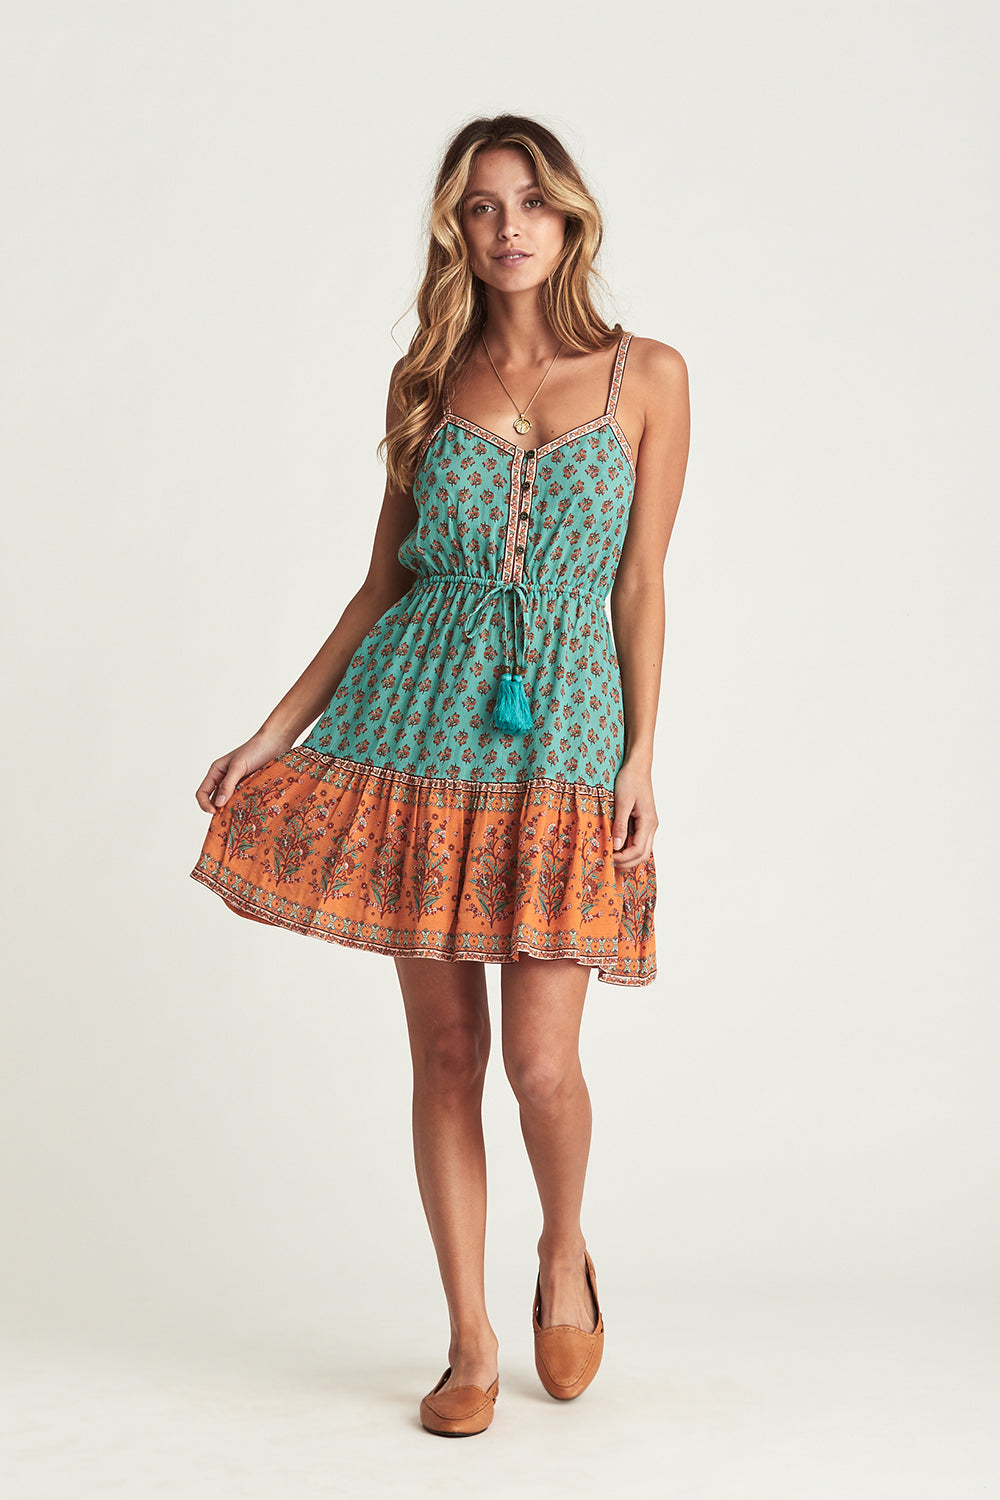 Serafina Mini Dress in Kingfisher